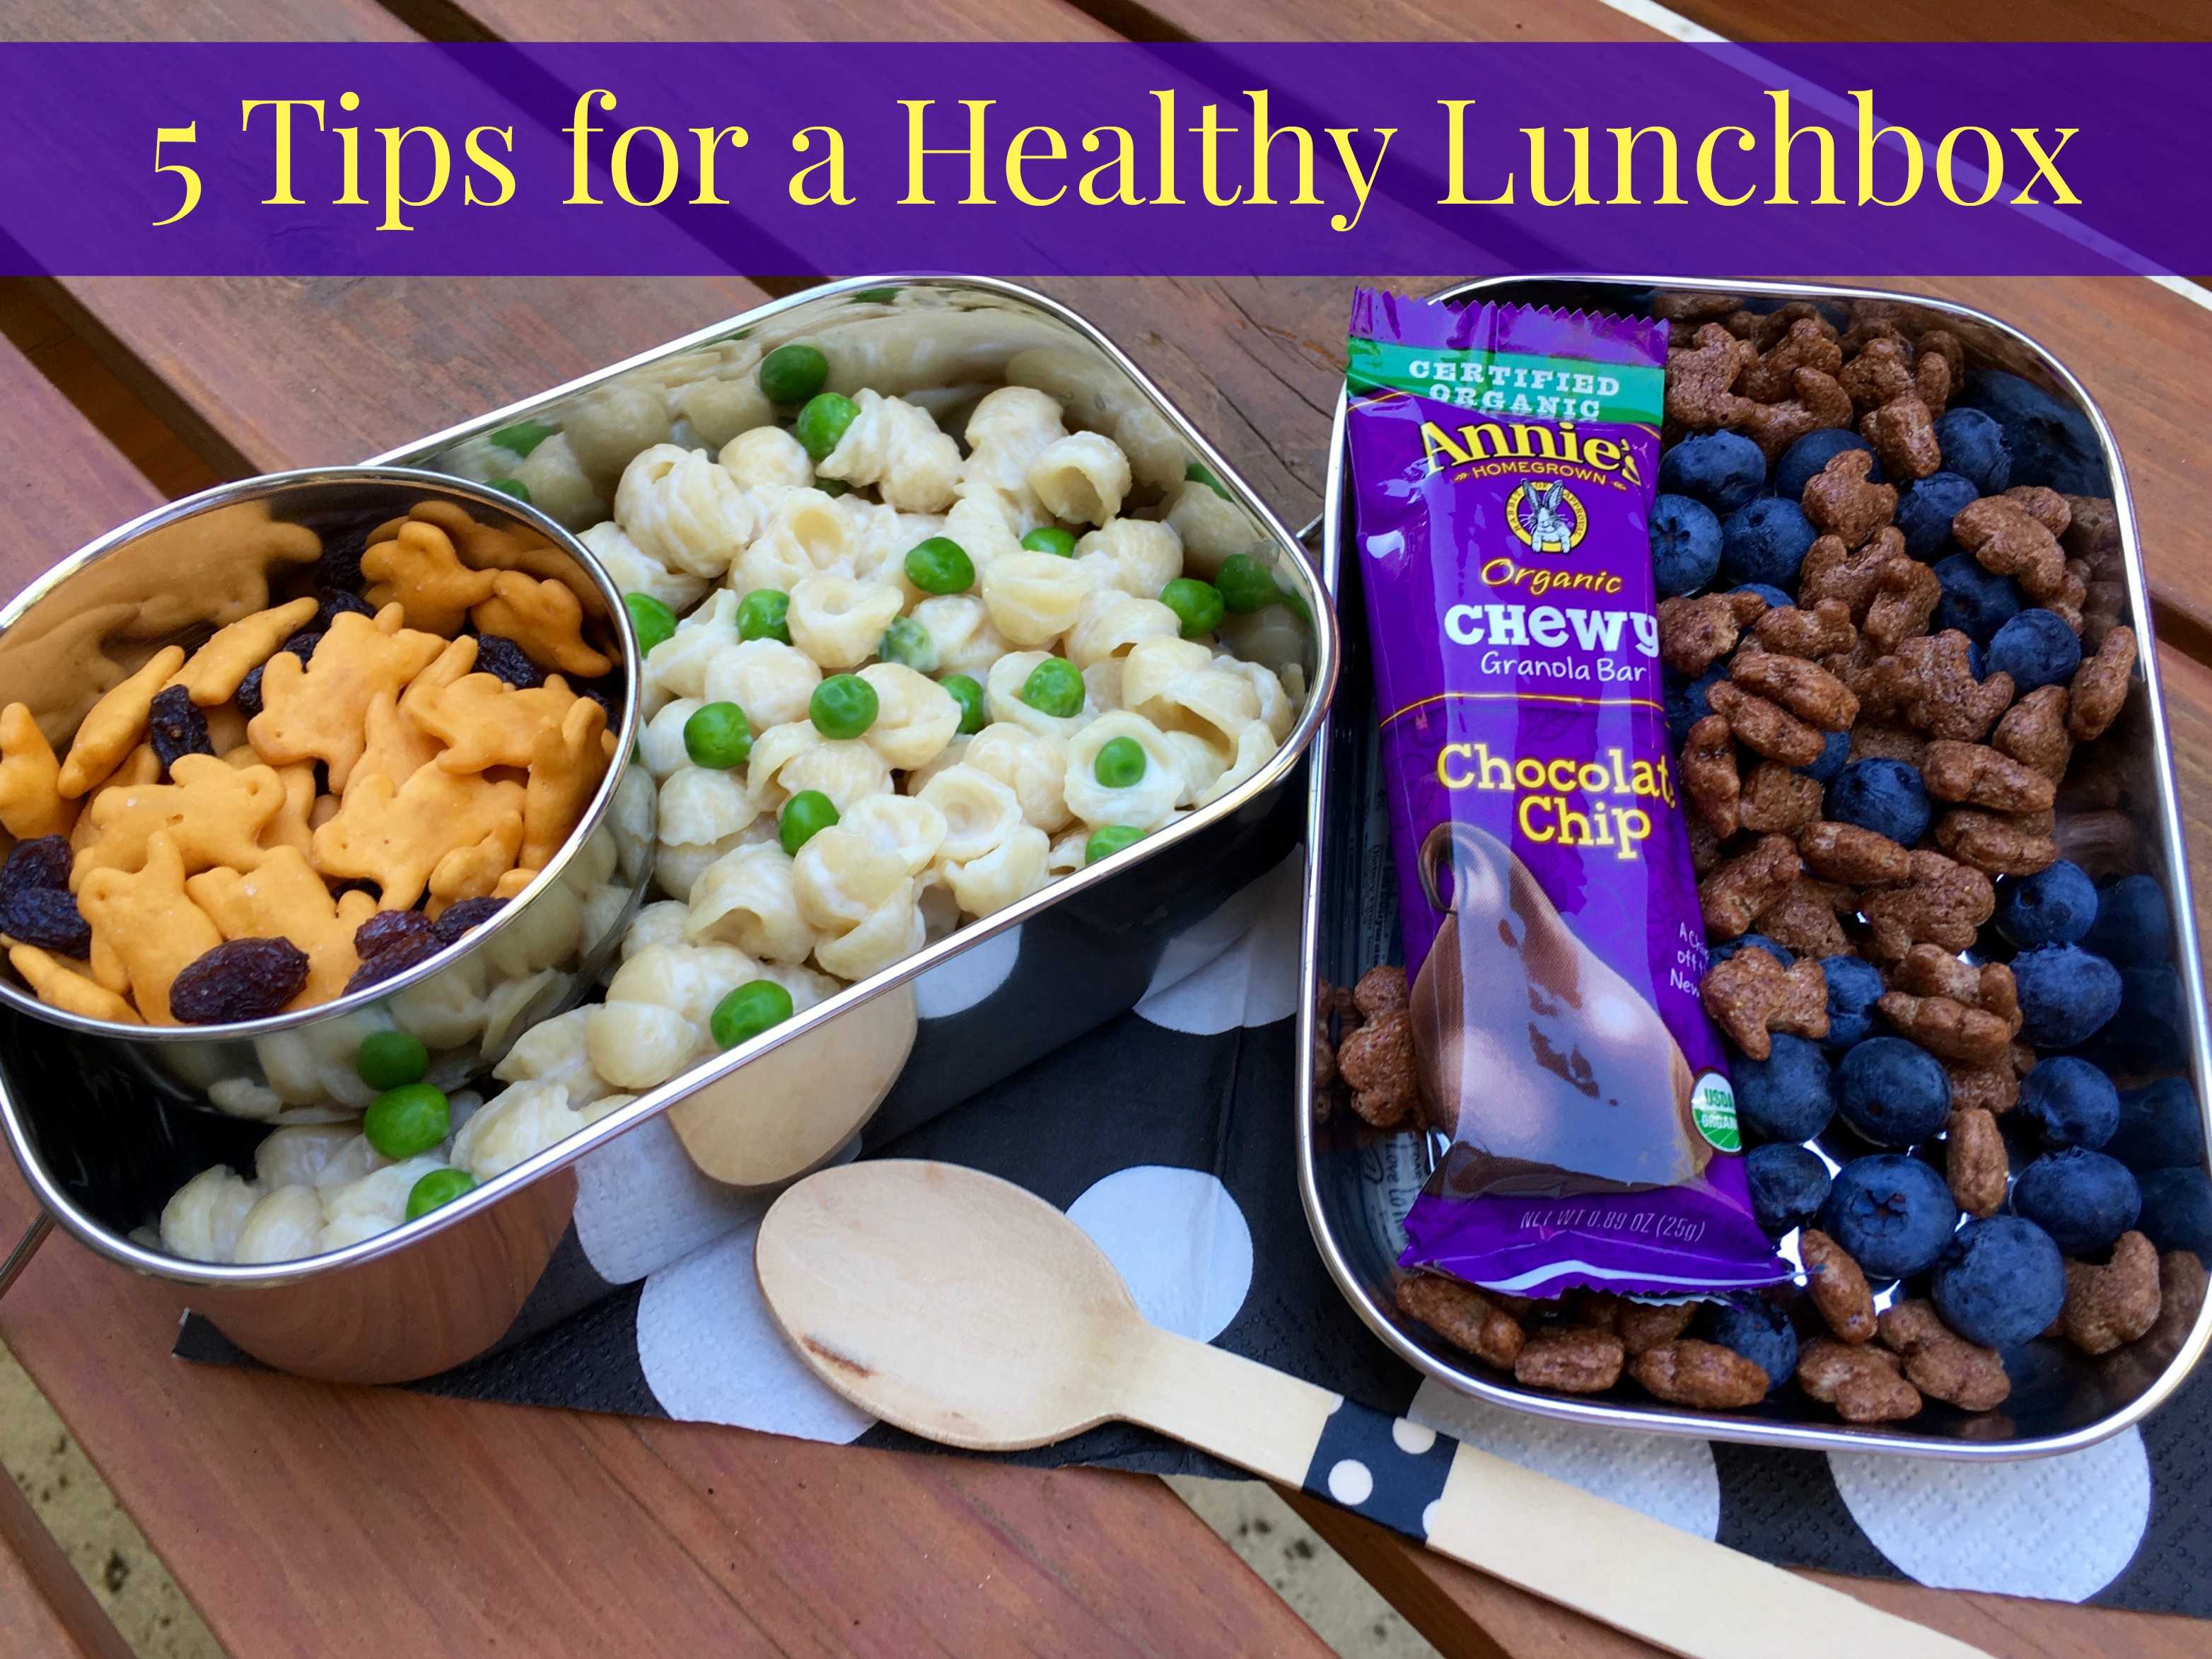 Top 5 Tips for a Healthy Lunchbox